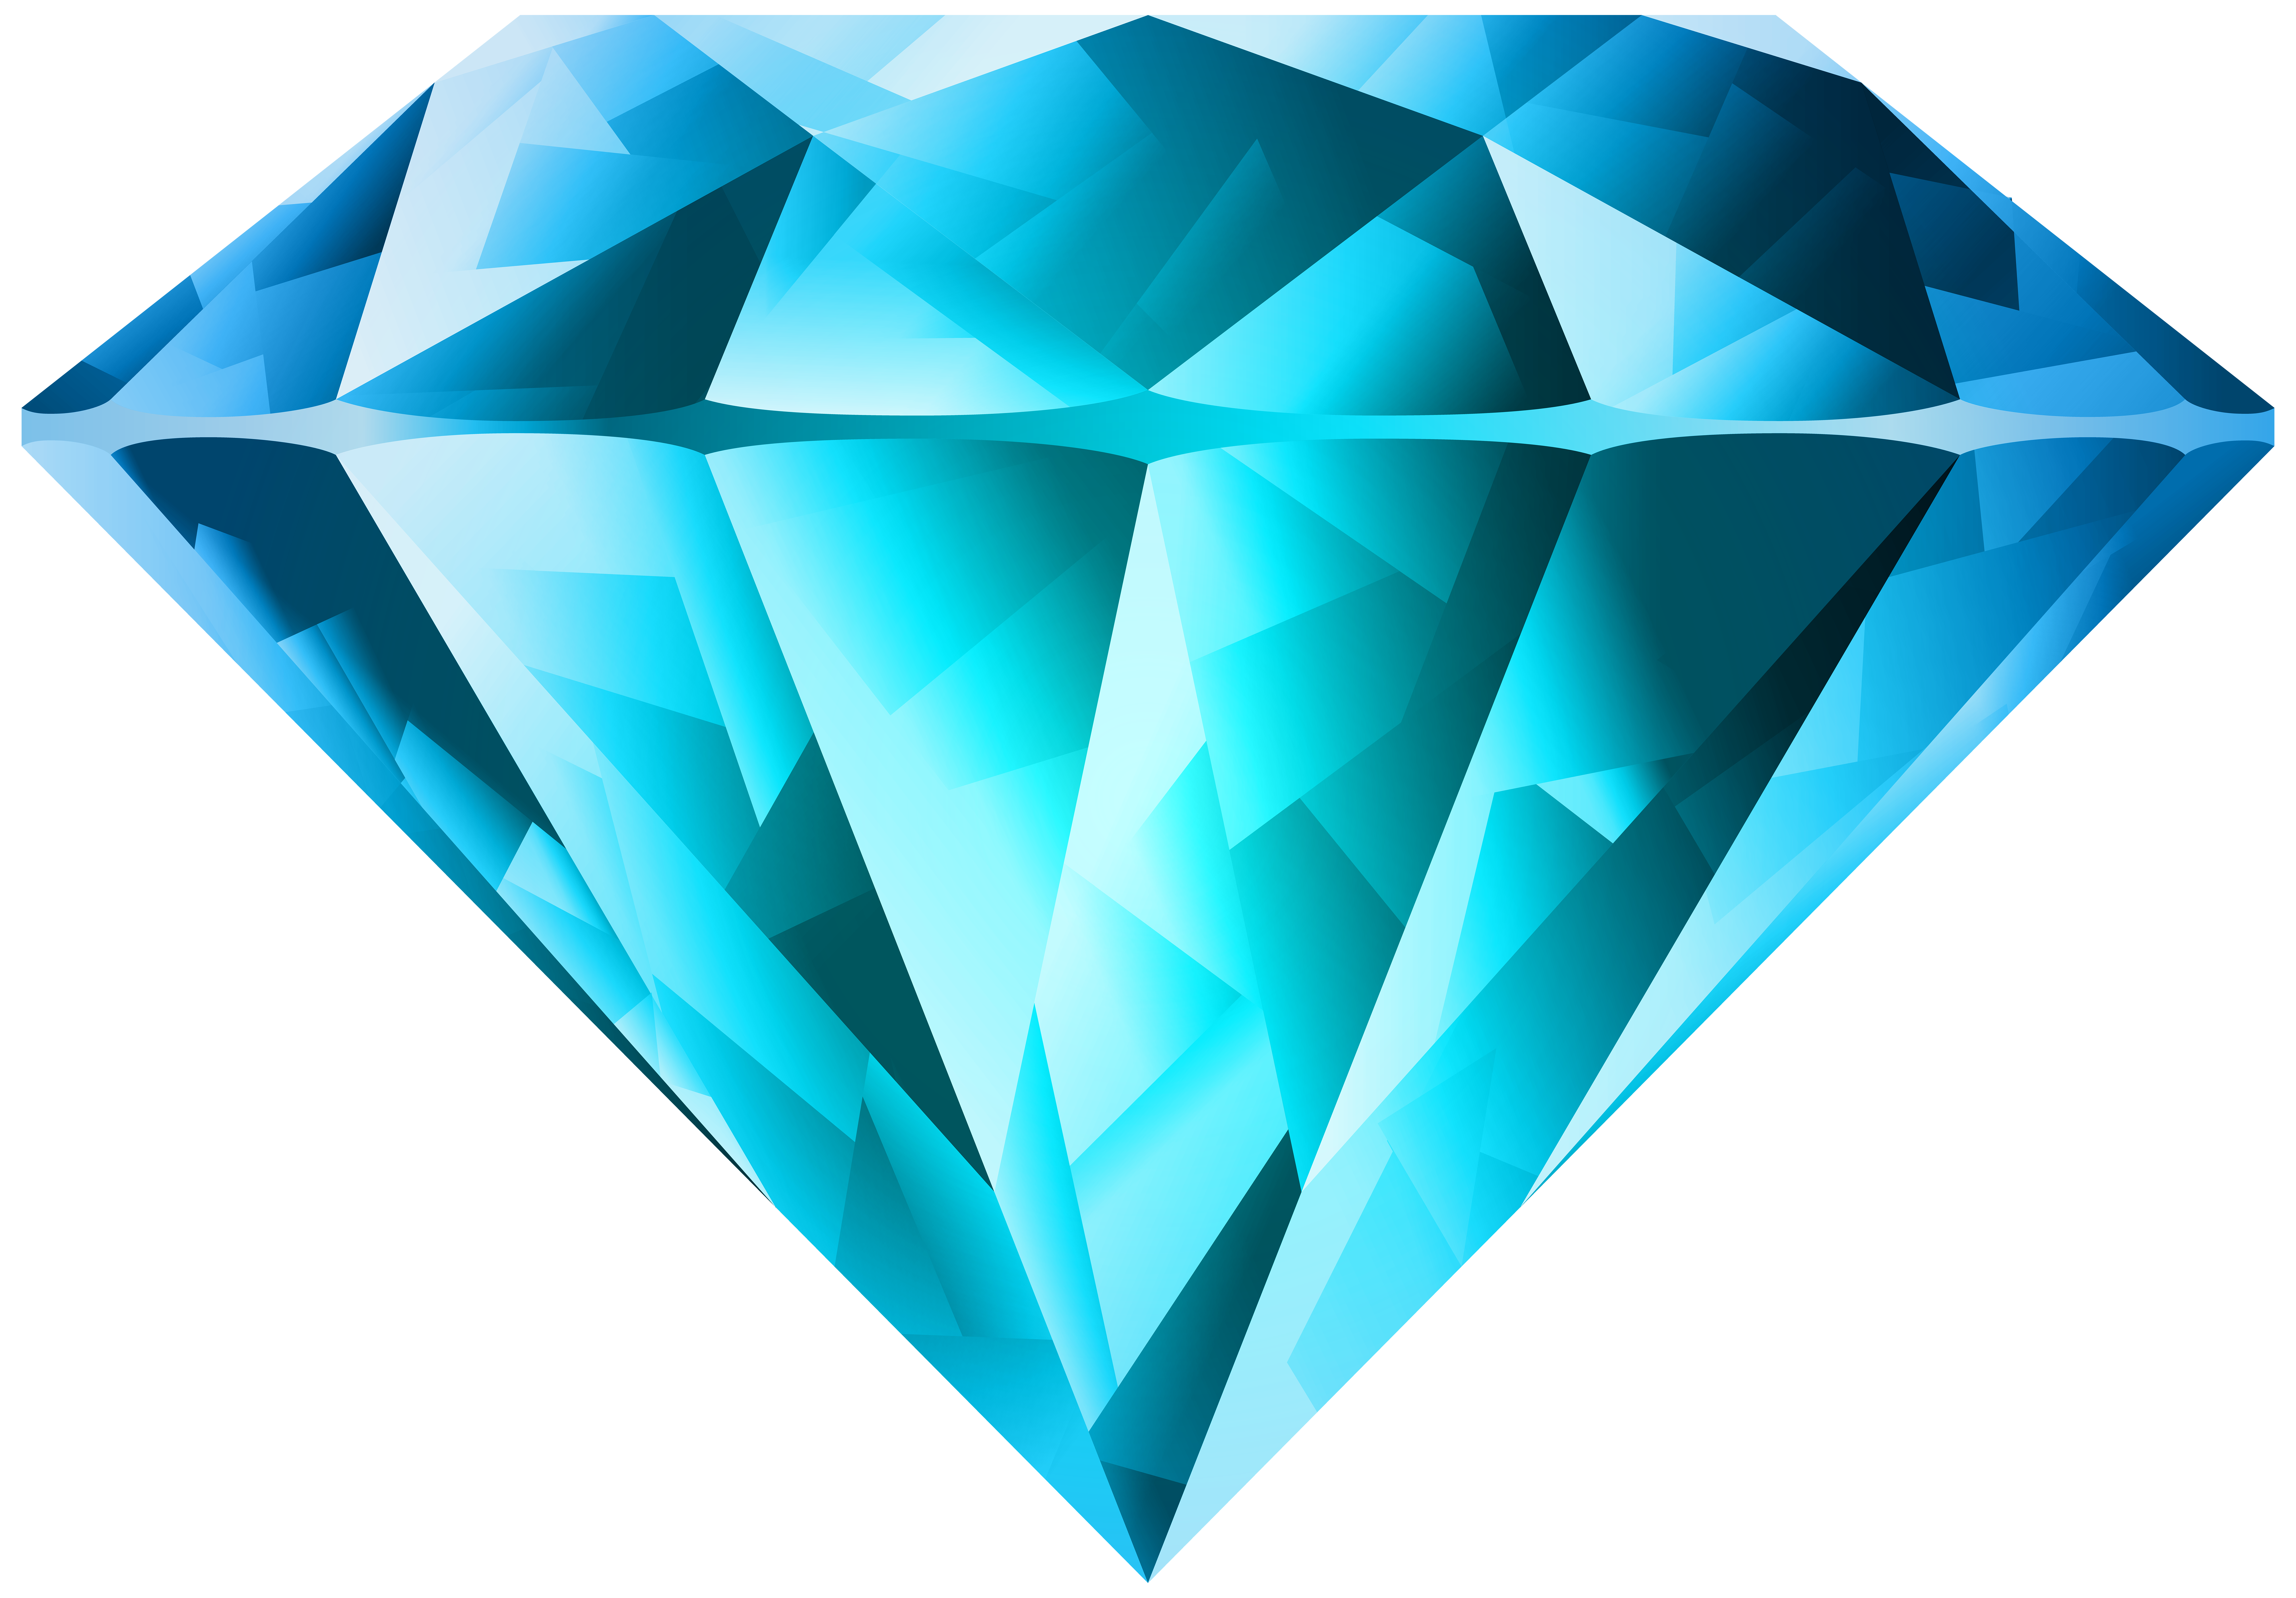 Blue Diamond Transparent Png Clip Art Image Gallery Yopriceville High Quality Images And Transparent Png Free Cli Blue Diamond Gem Drawing Diamond Drawing